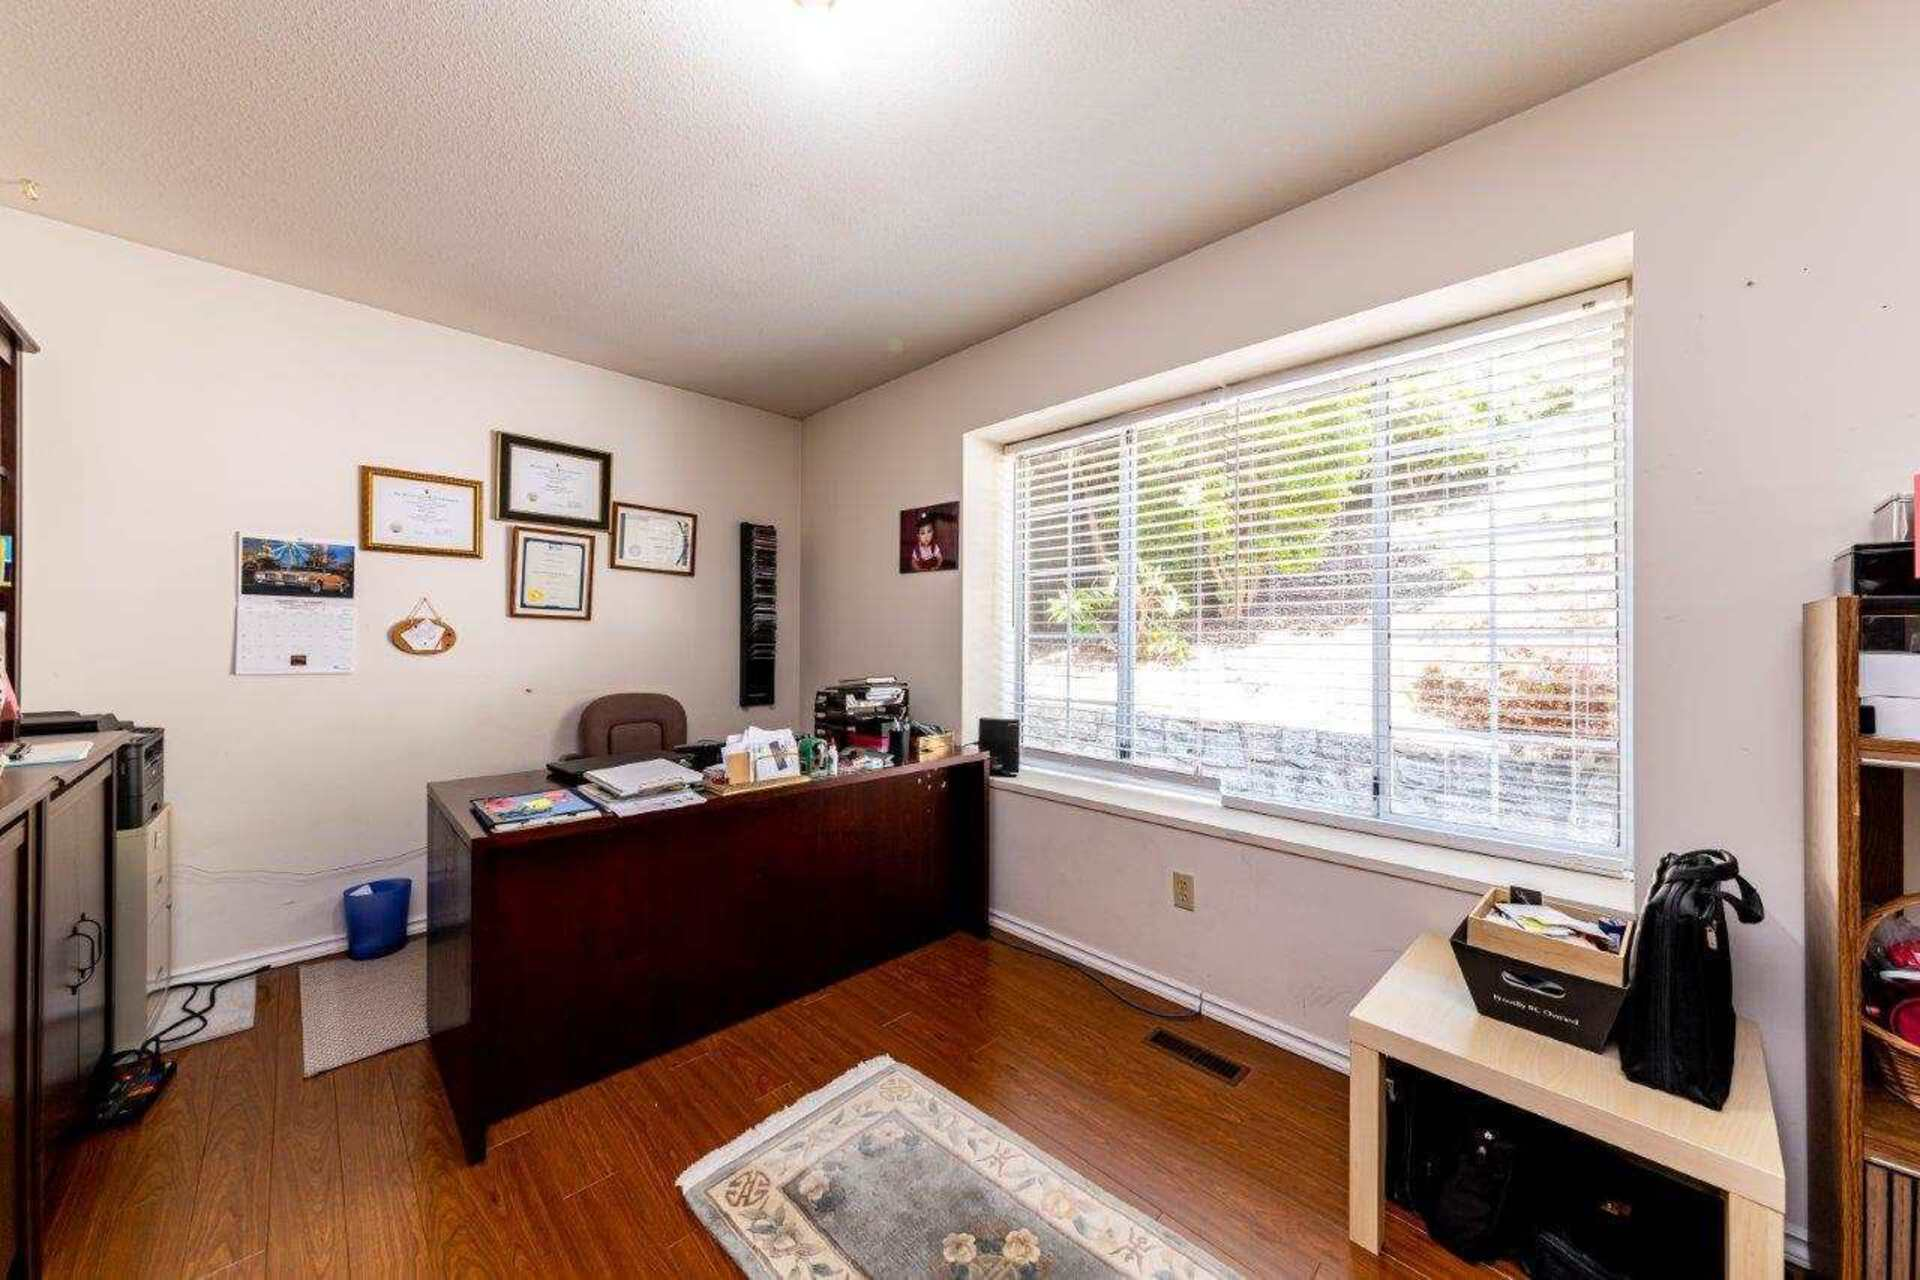 509-tempe-crescent-upper-lonsdale-north-vancouver-04 at 509 Tempe Crescent, Upper Lonsdale, North Vancouver